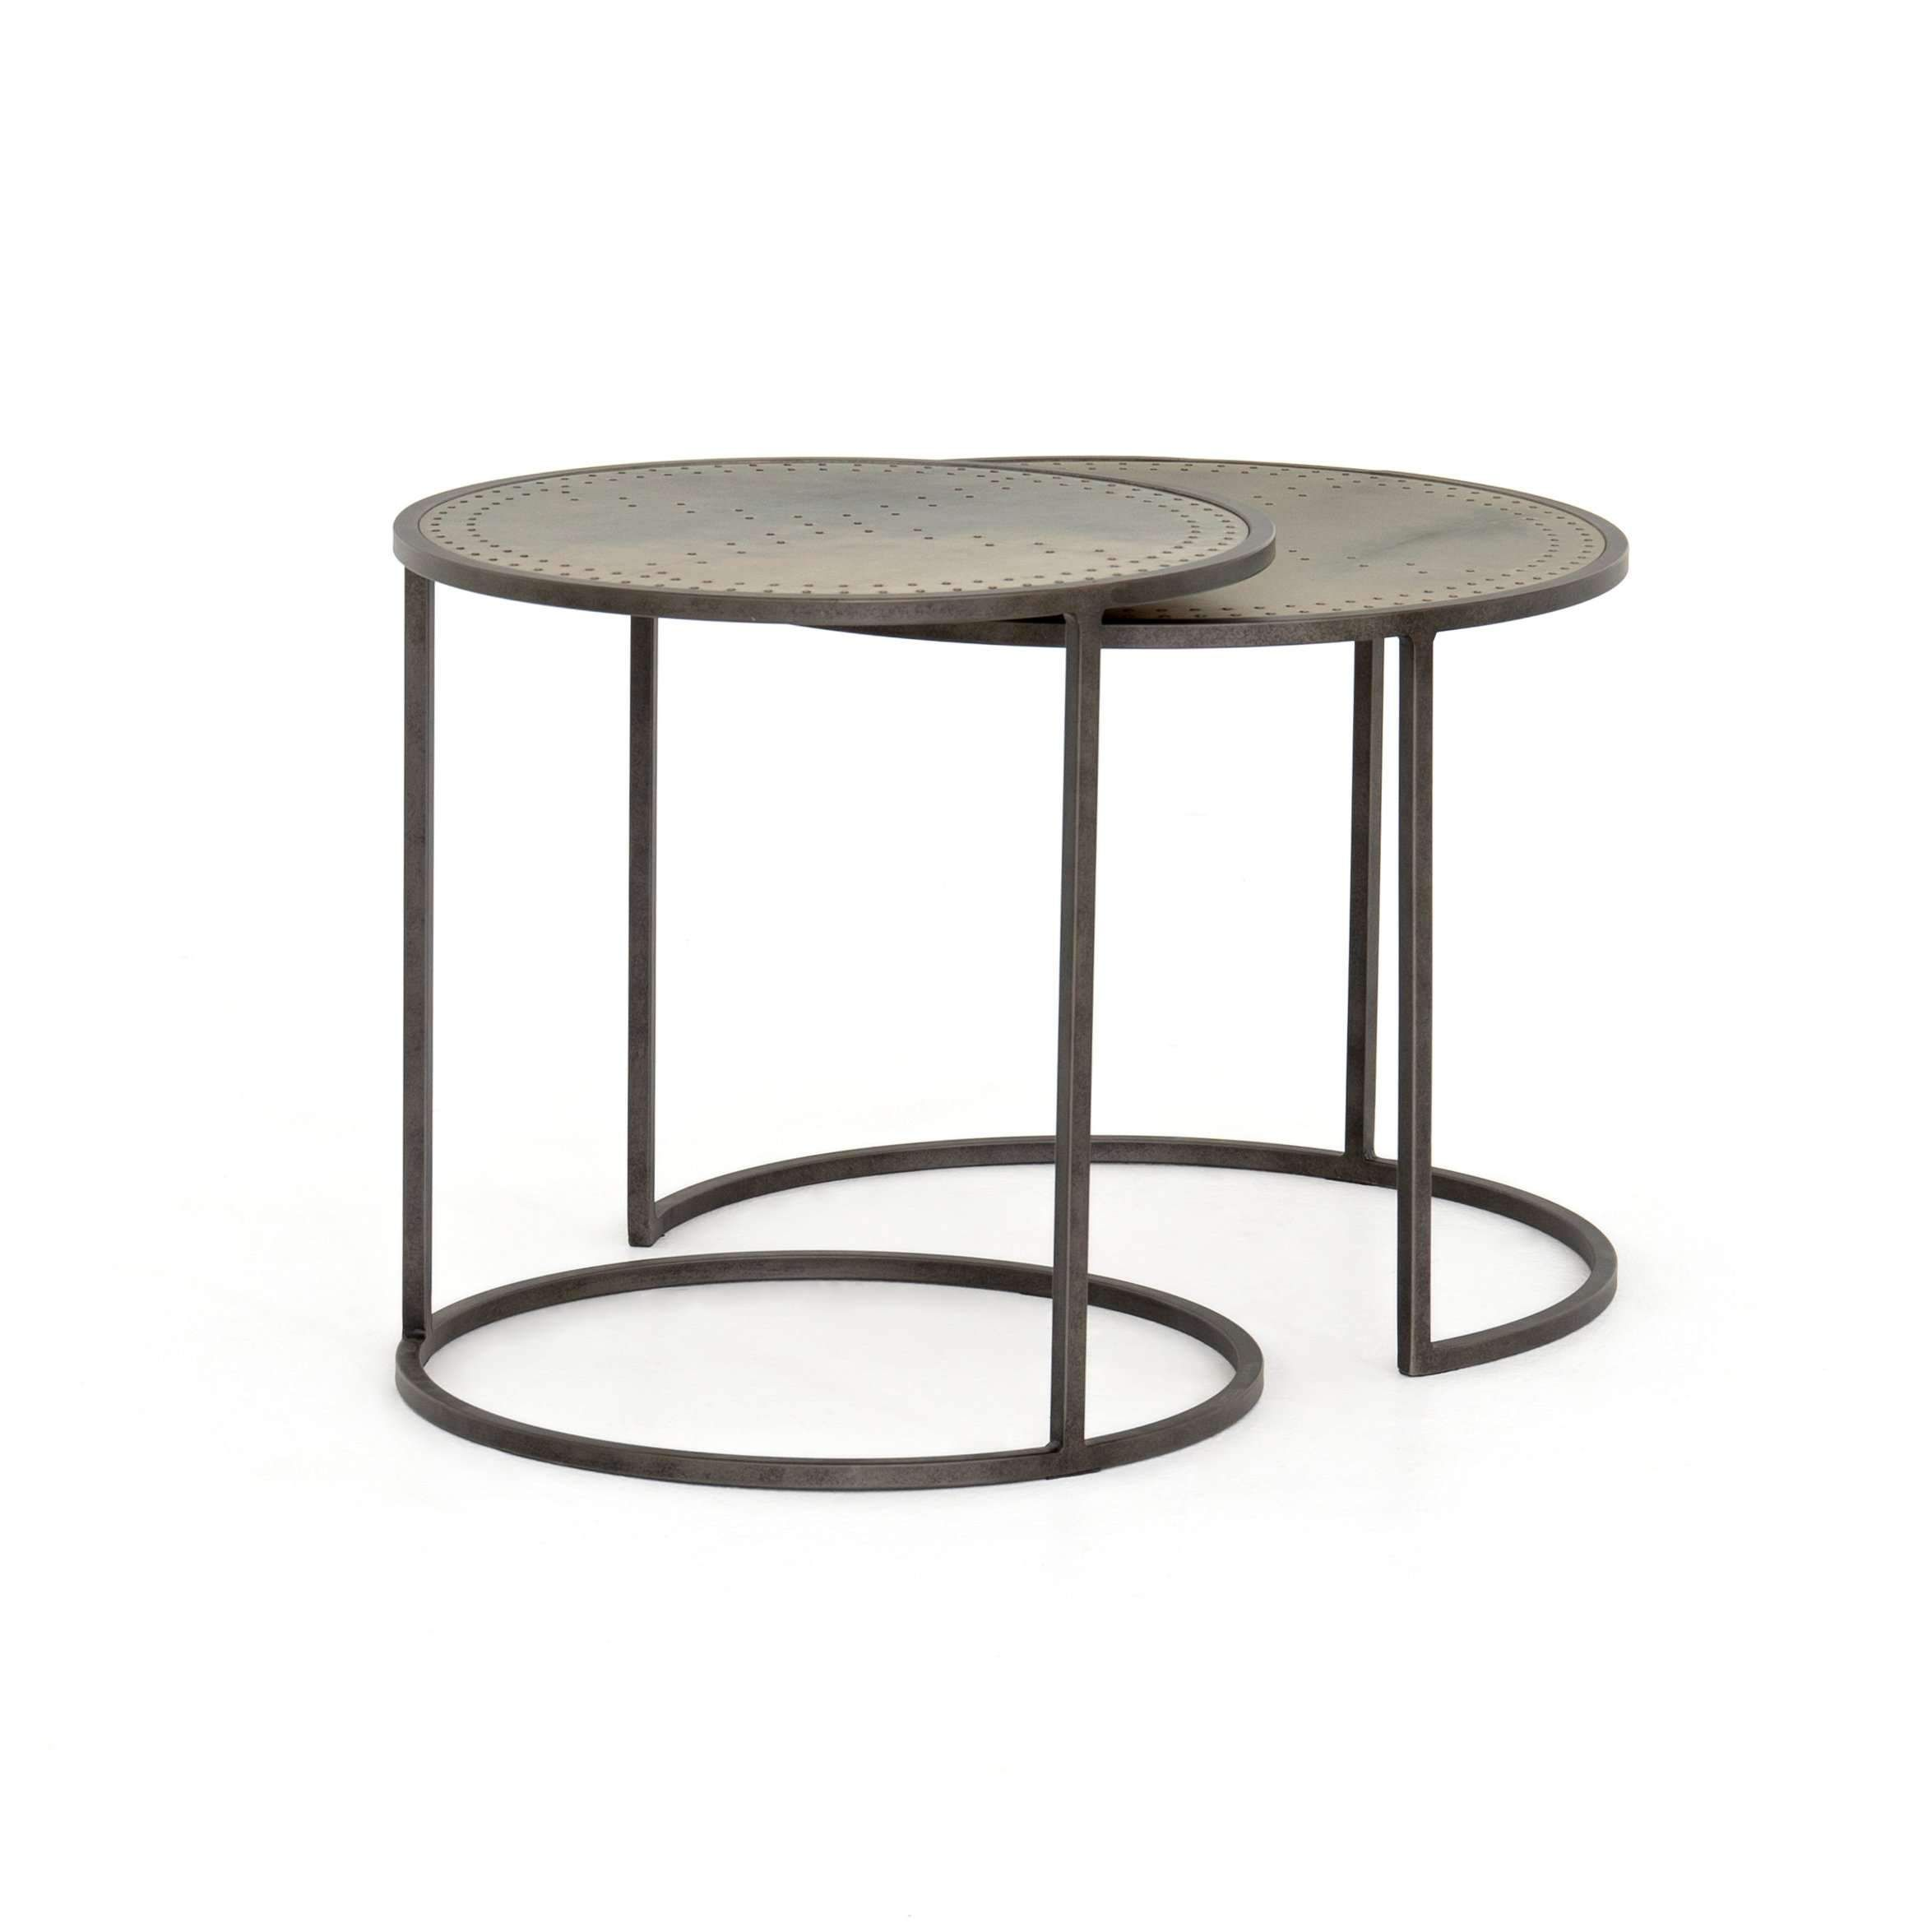 Catalina Nesting Side Tables Nesting End Tables Nesting Tables Side Table